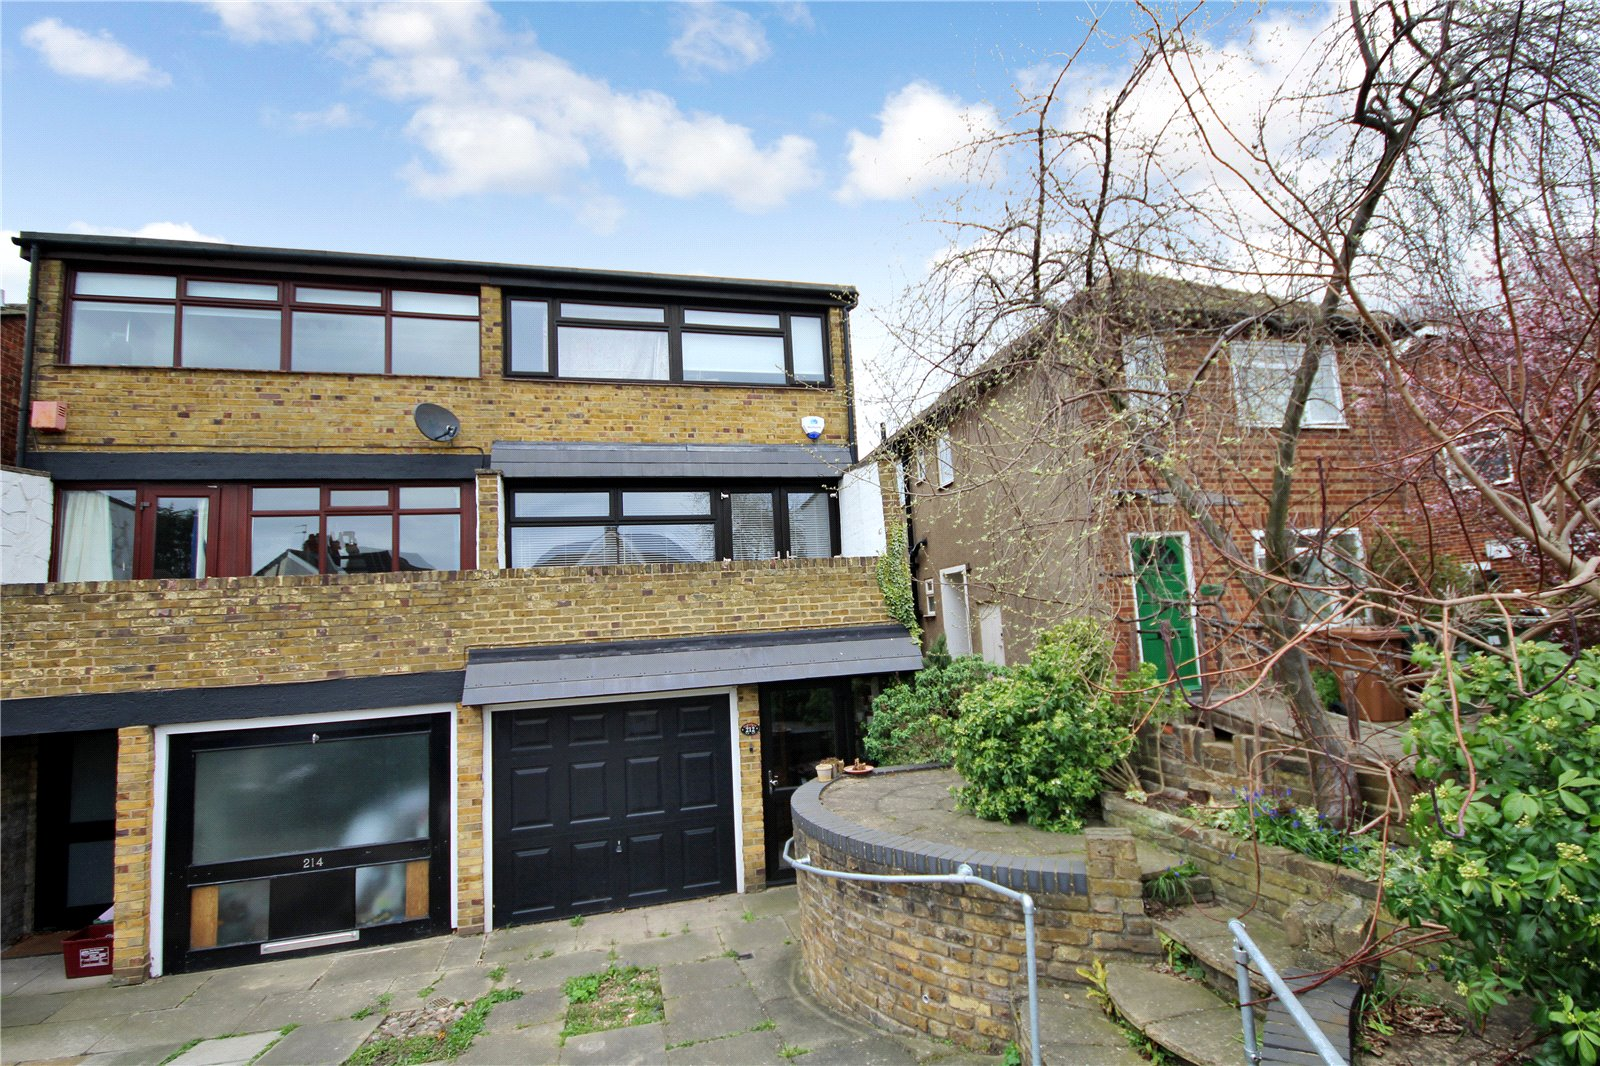 Bellegrove Road, Welling, Kent, DA16